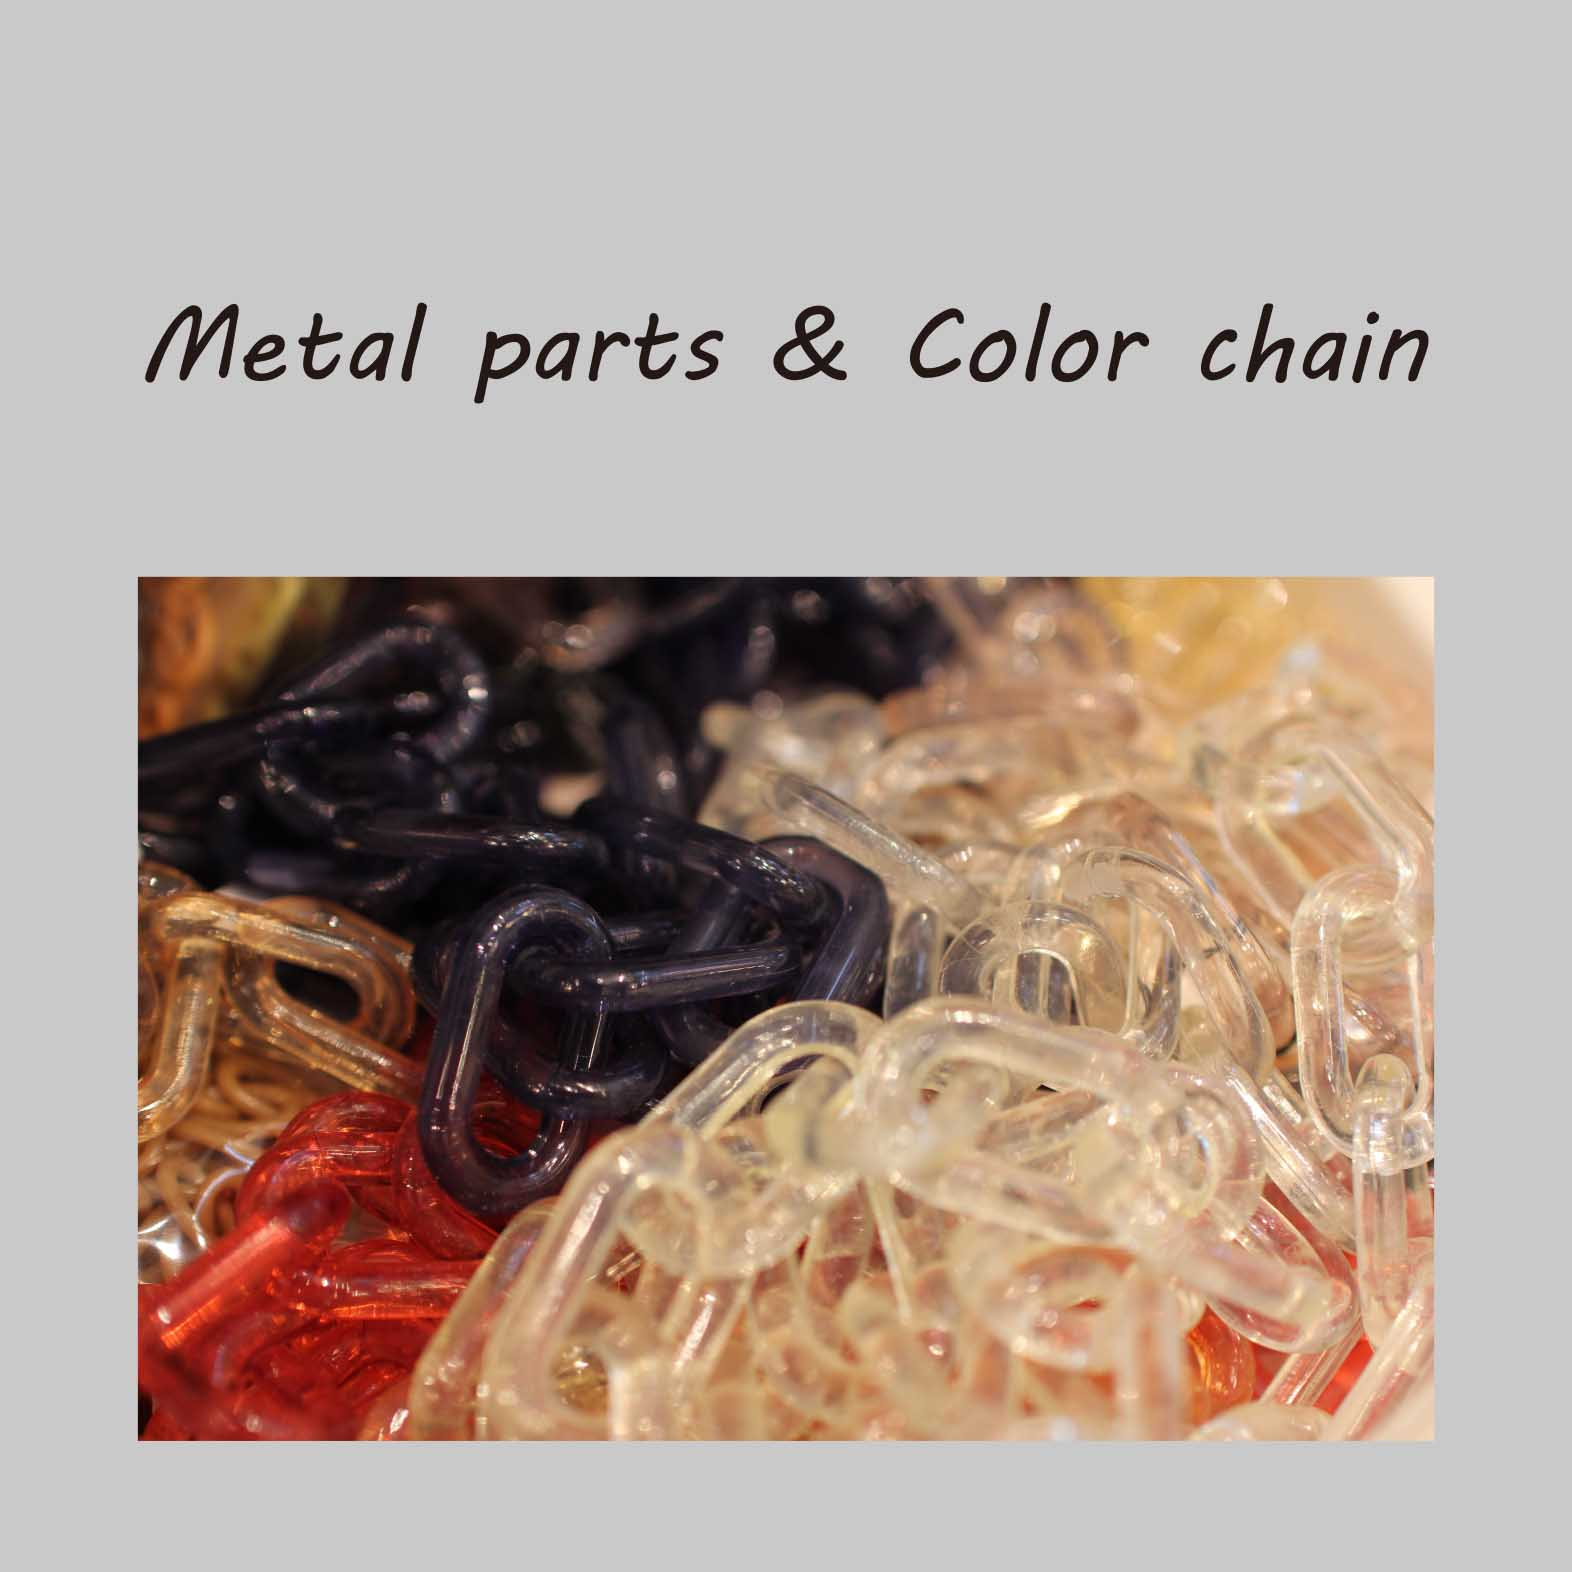 Metal Parts & Color chain